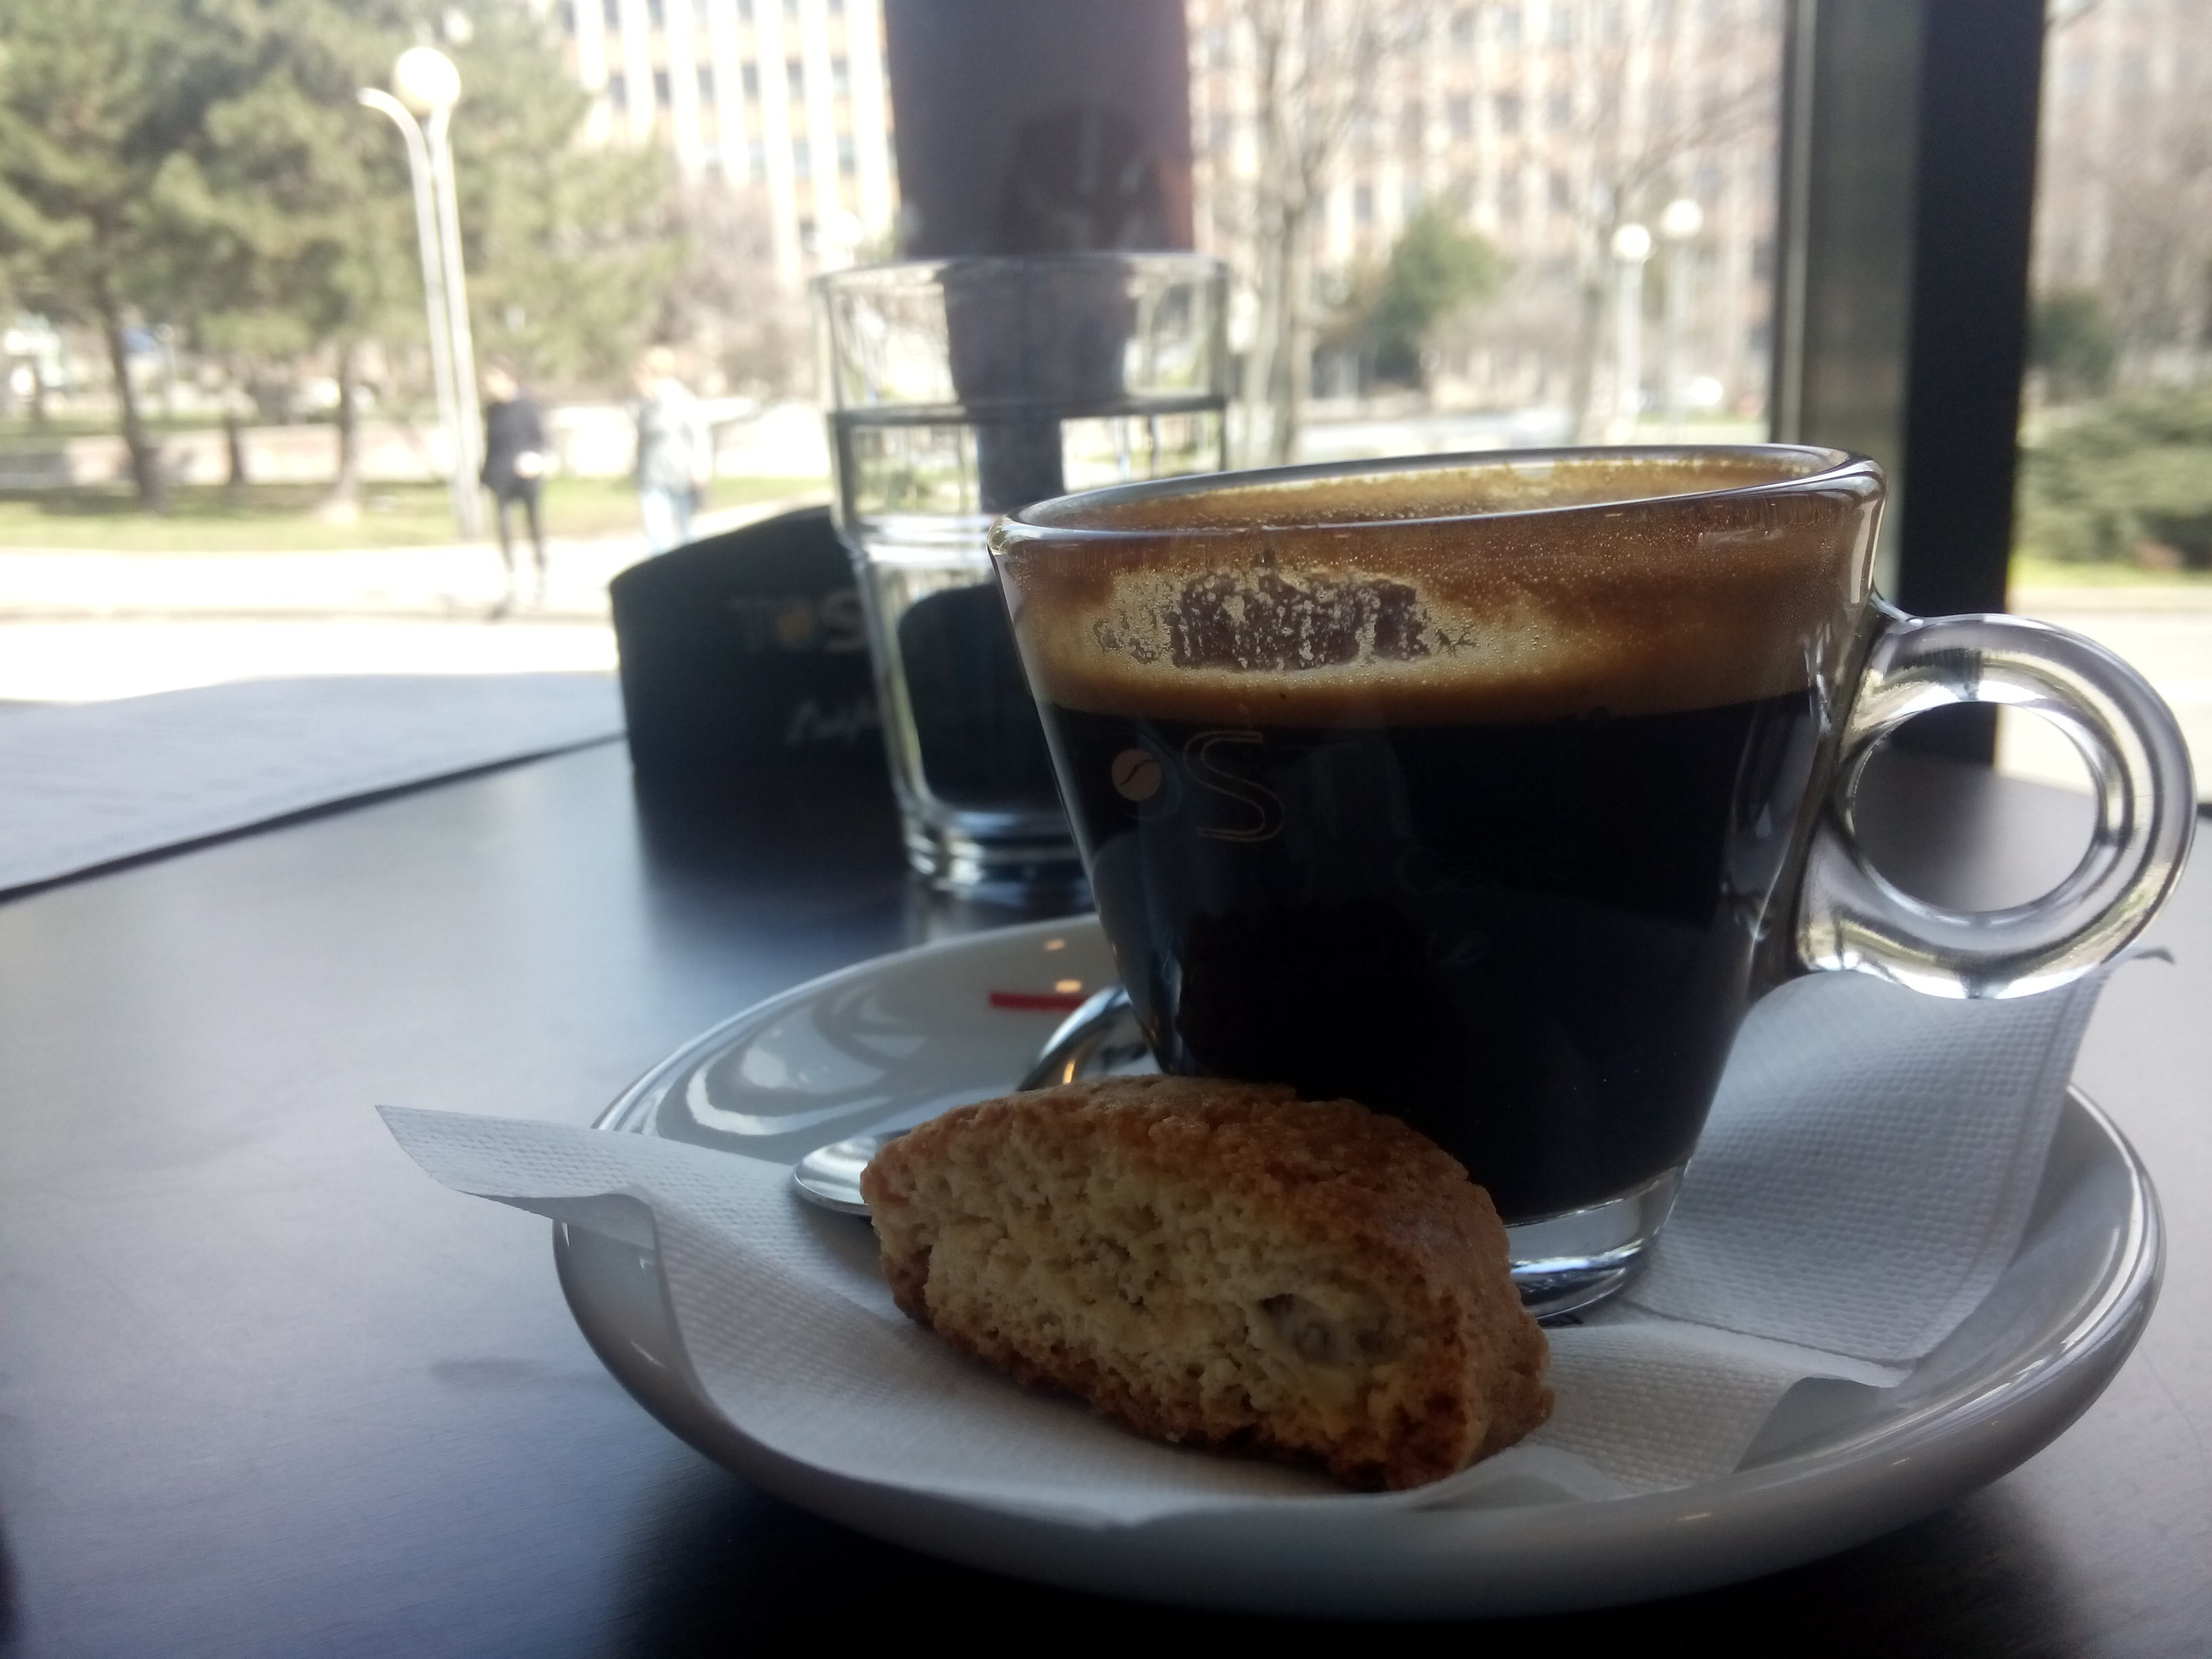 An espresso in a small glass cup on a plate with a biscotti on the side, in front of a window to the street